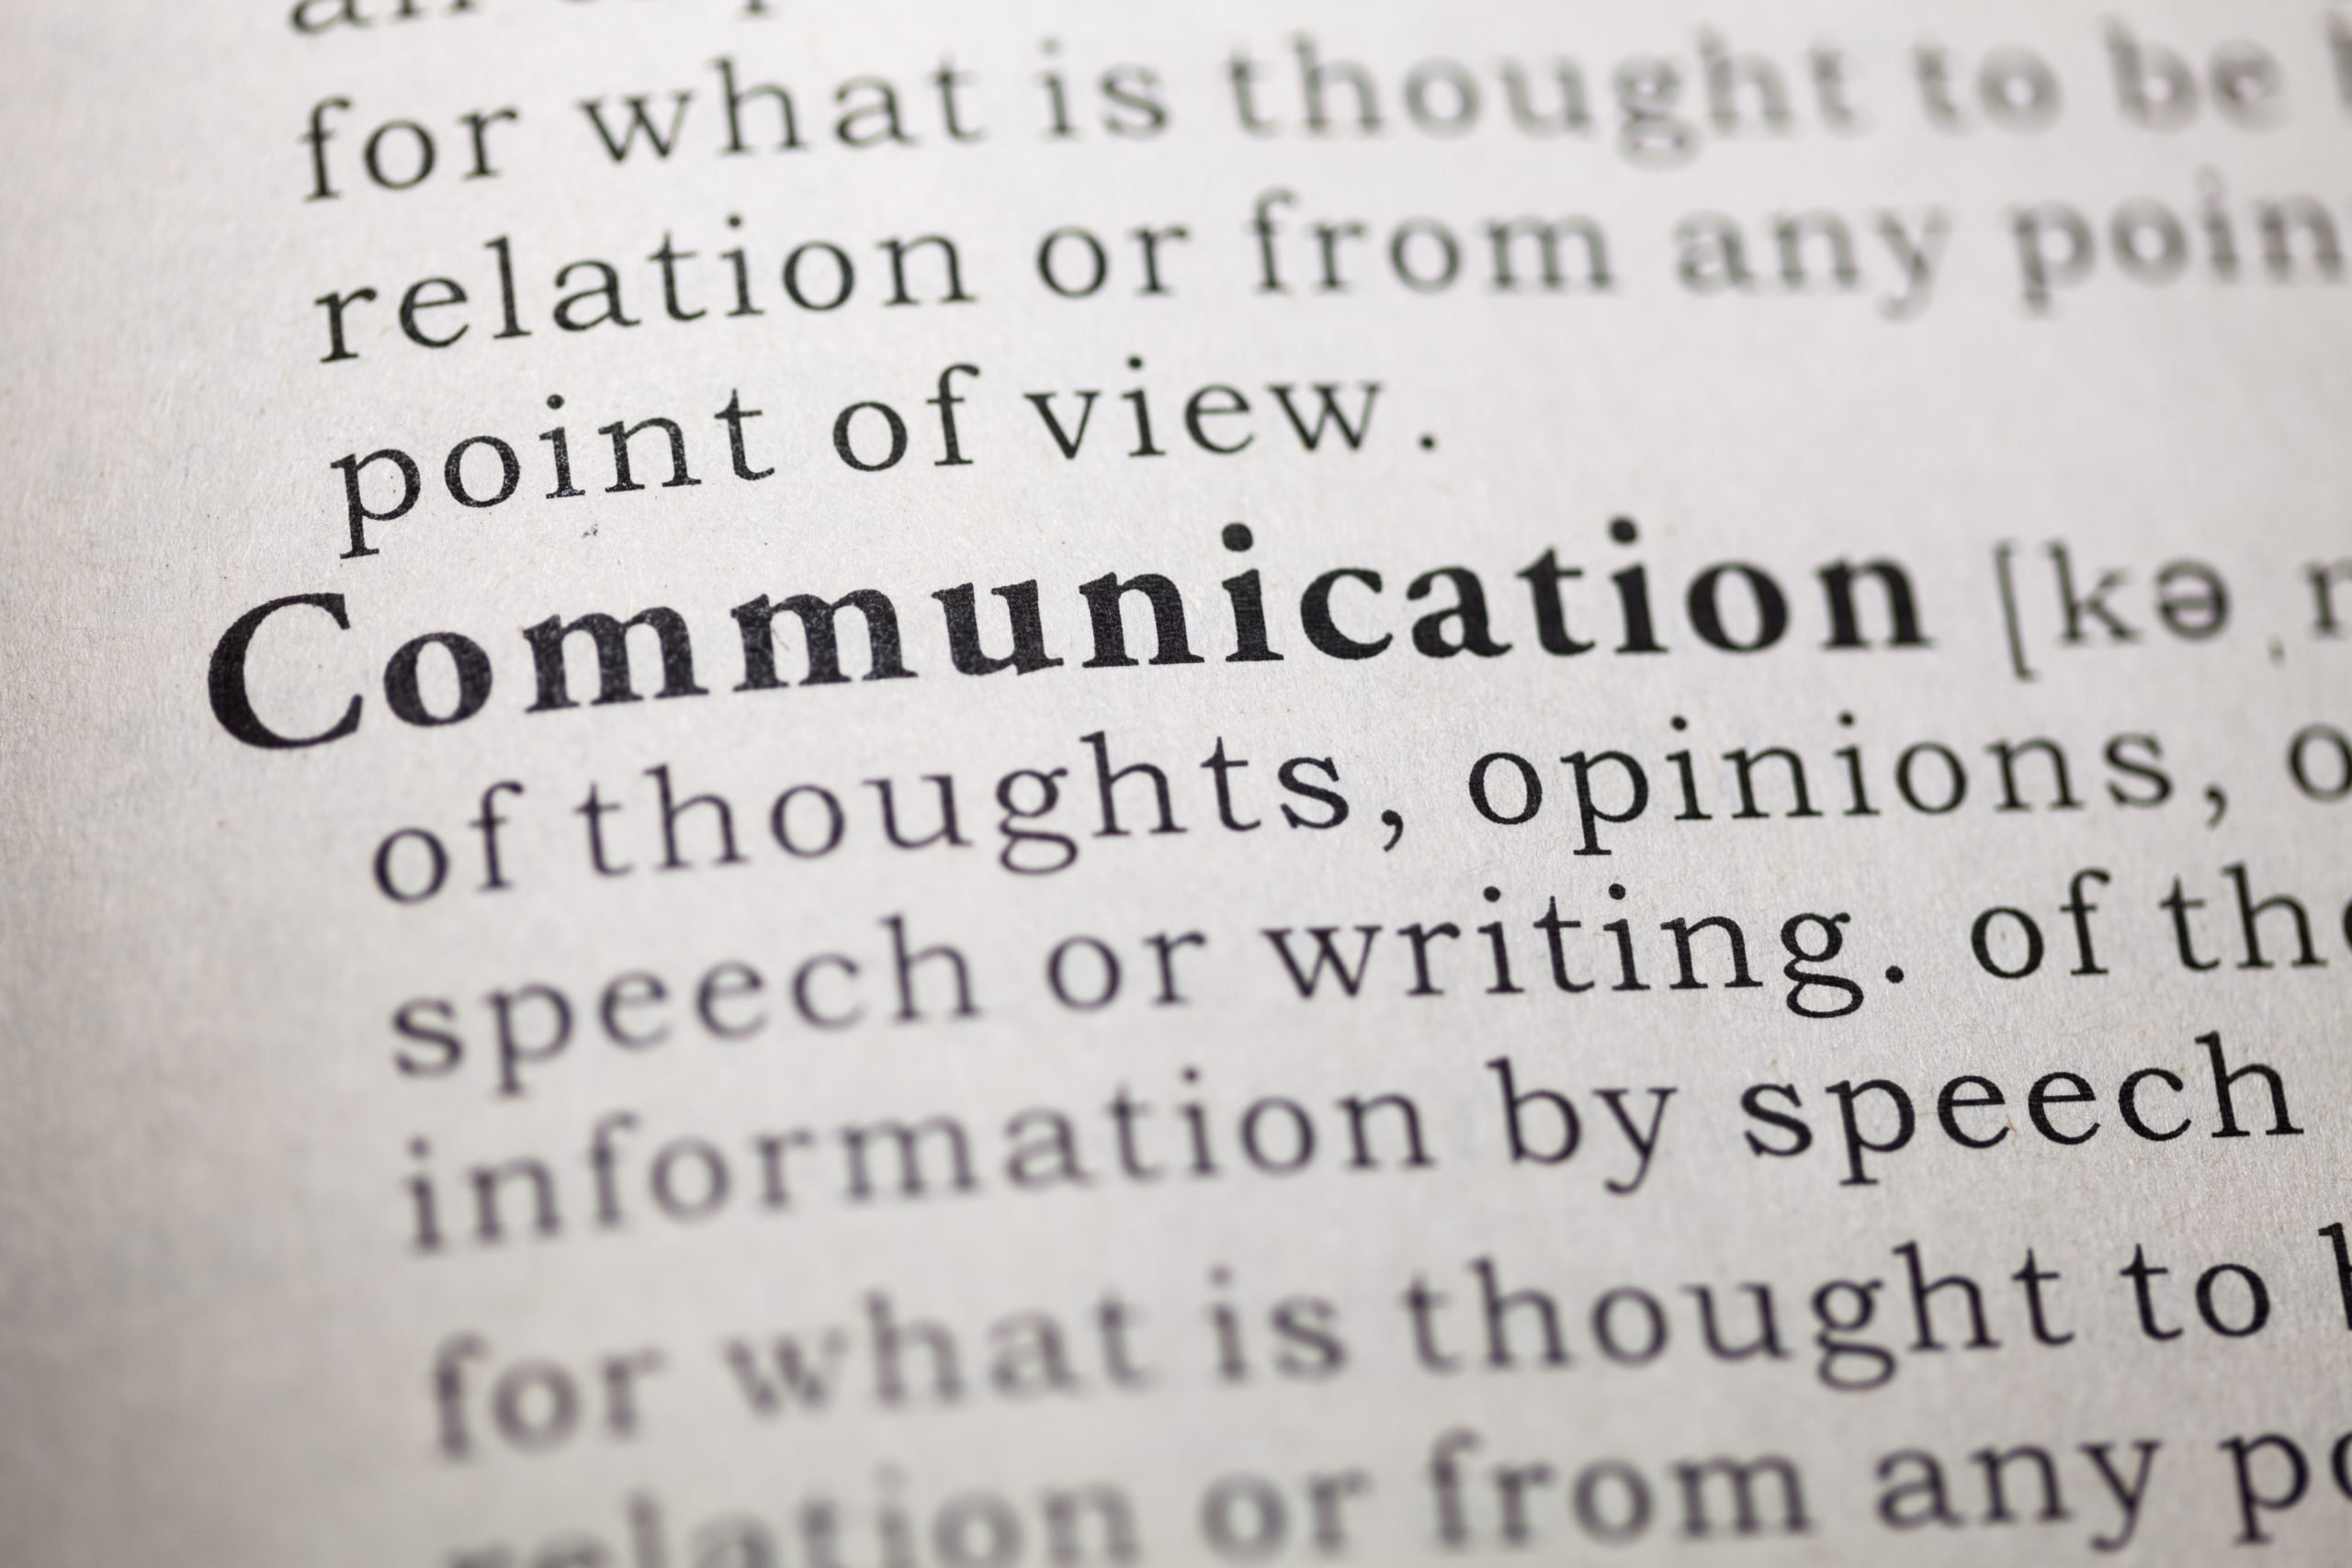 Dictionary definition of the word 'communication'